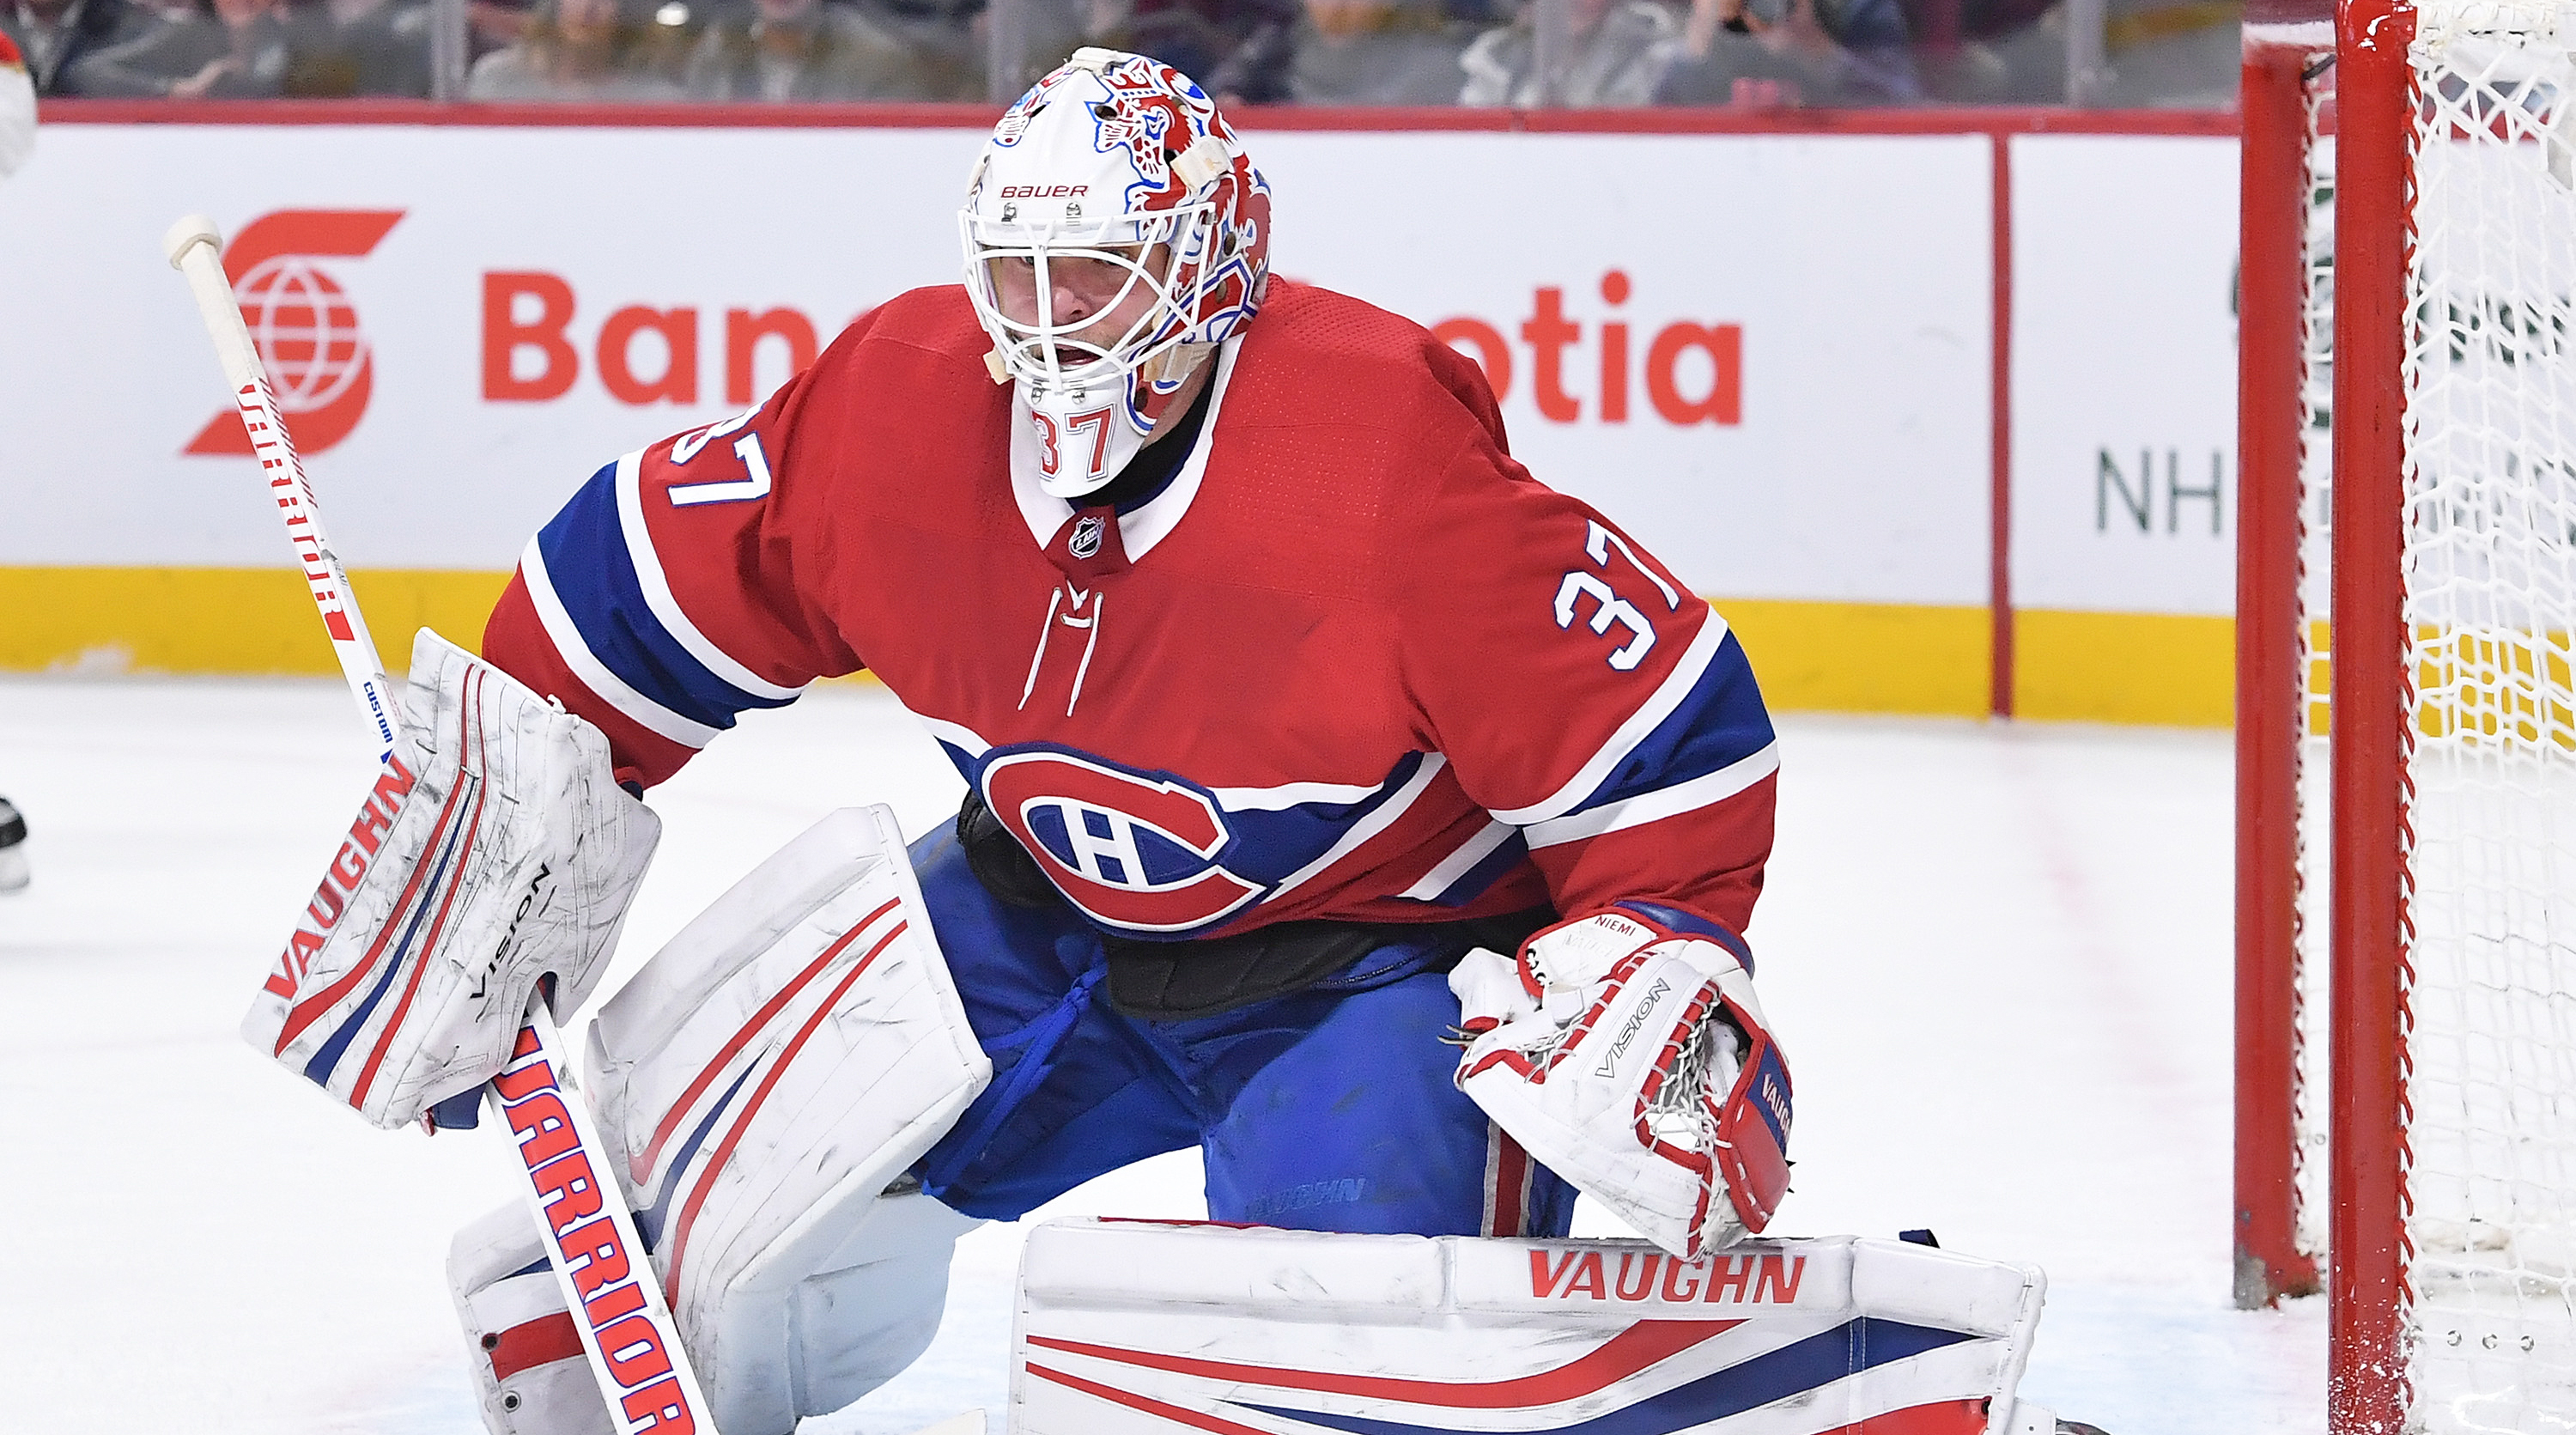 Antti-niemi-one-year-deal-canadiens